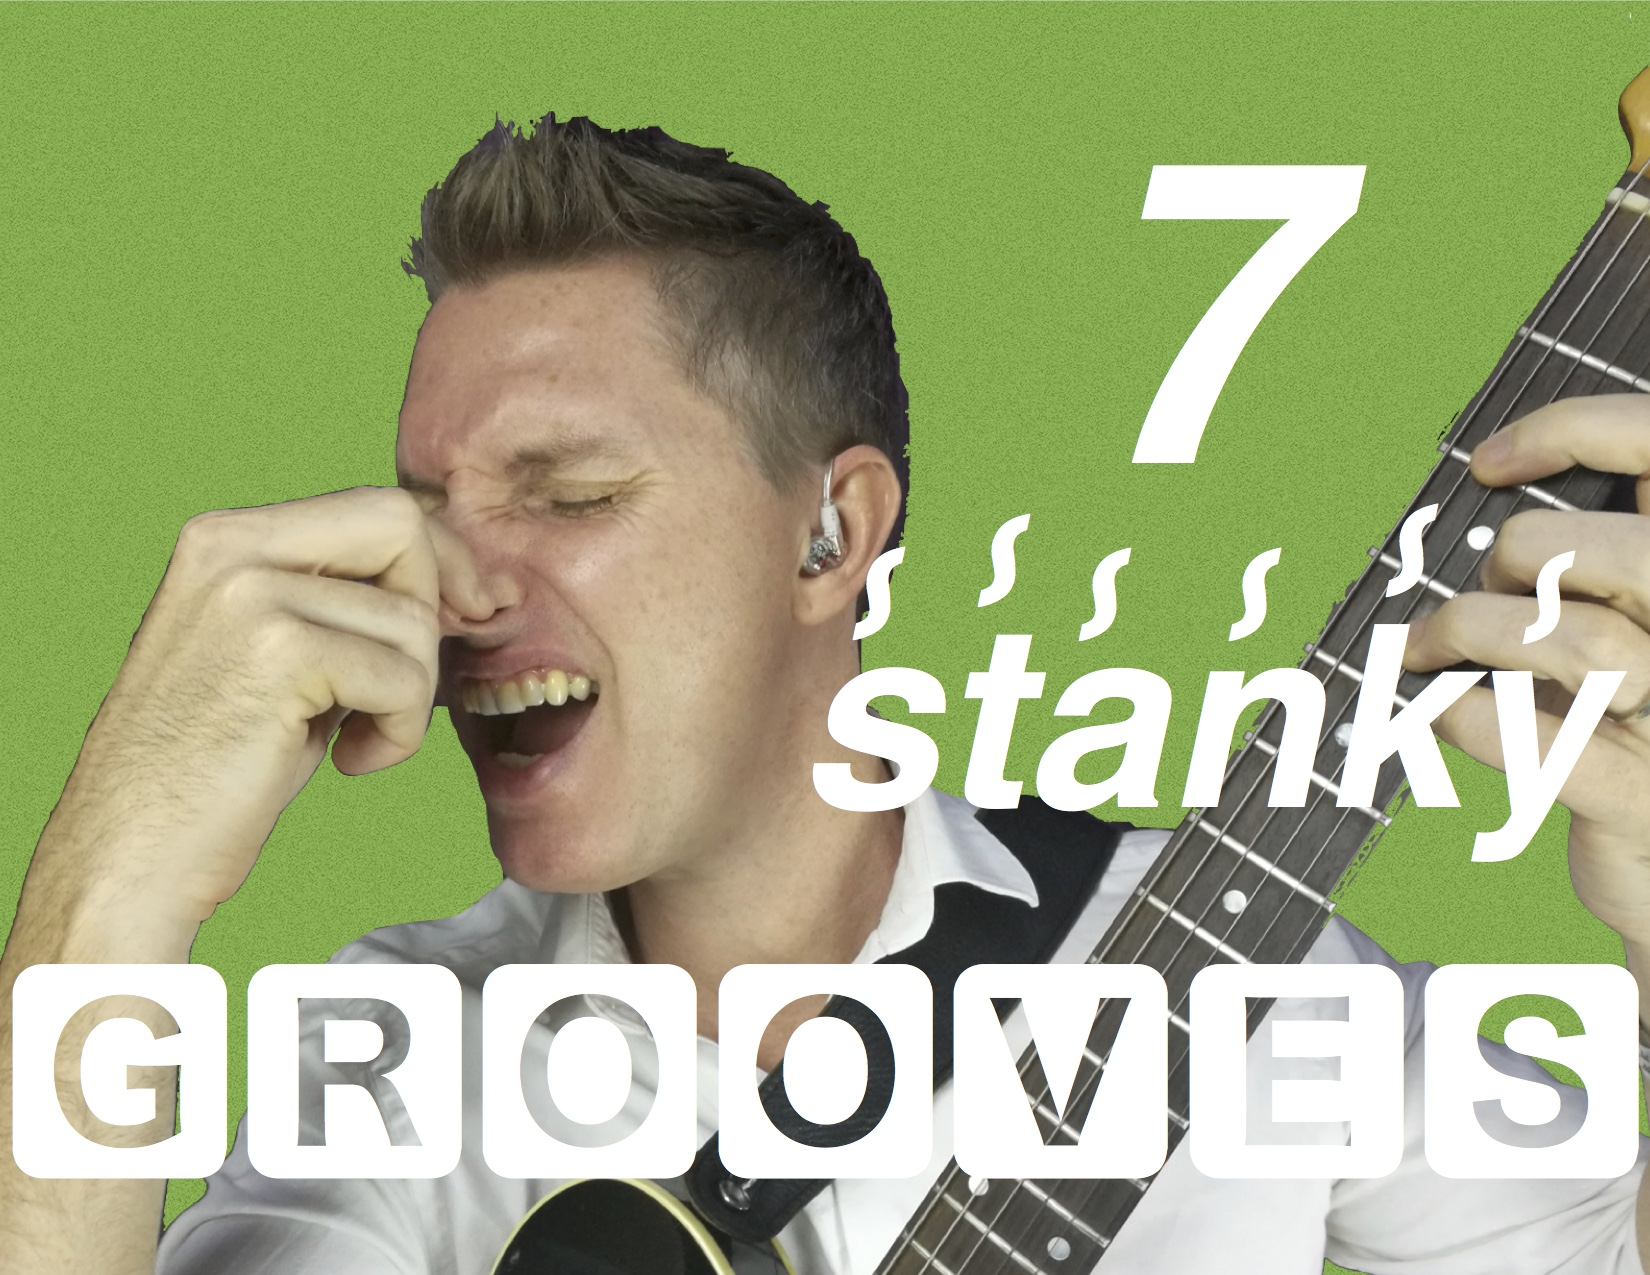 7 stanky grooves professional funk lessons